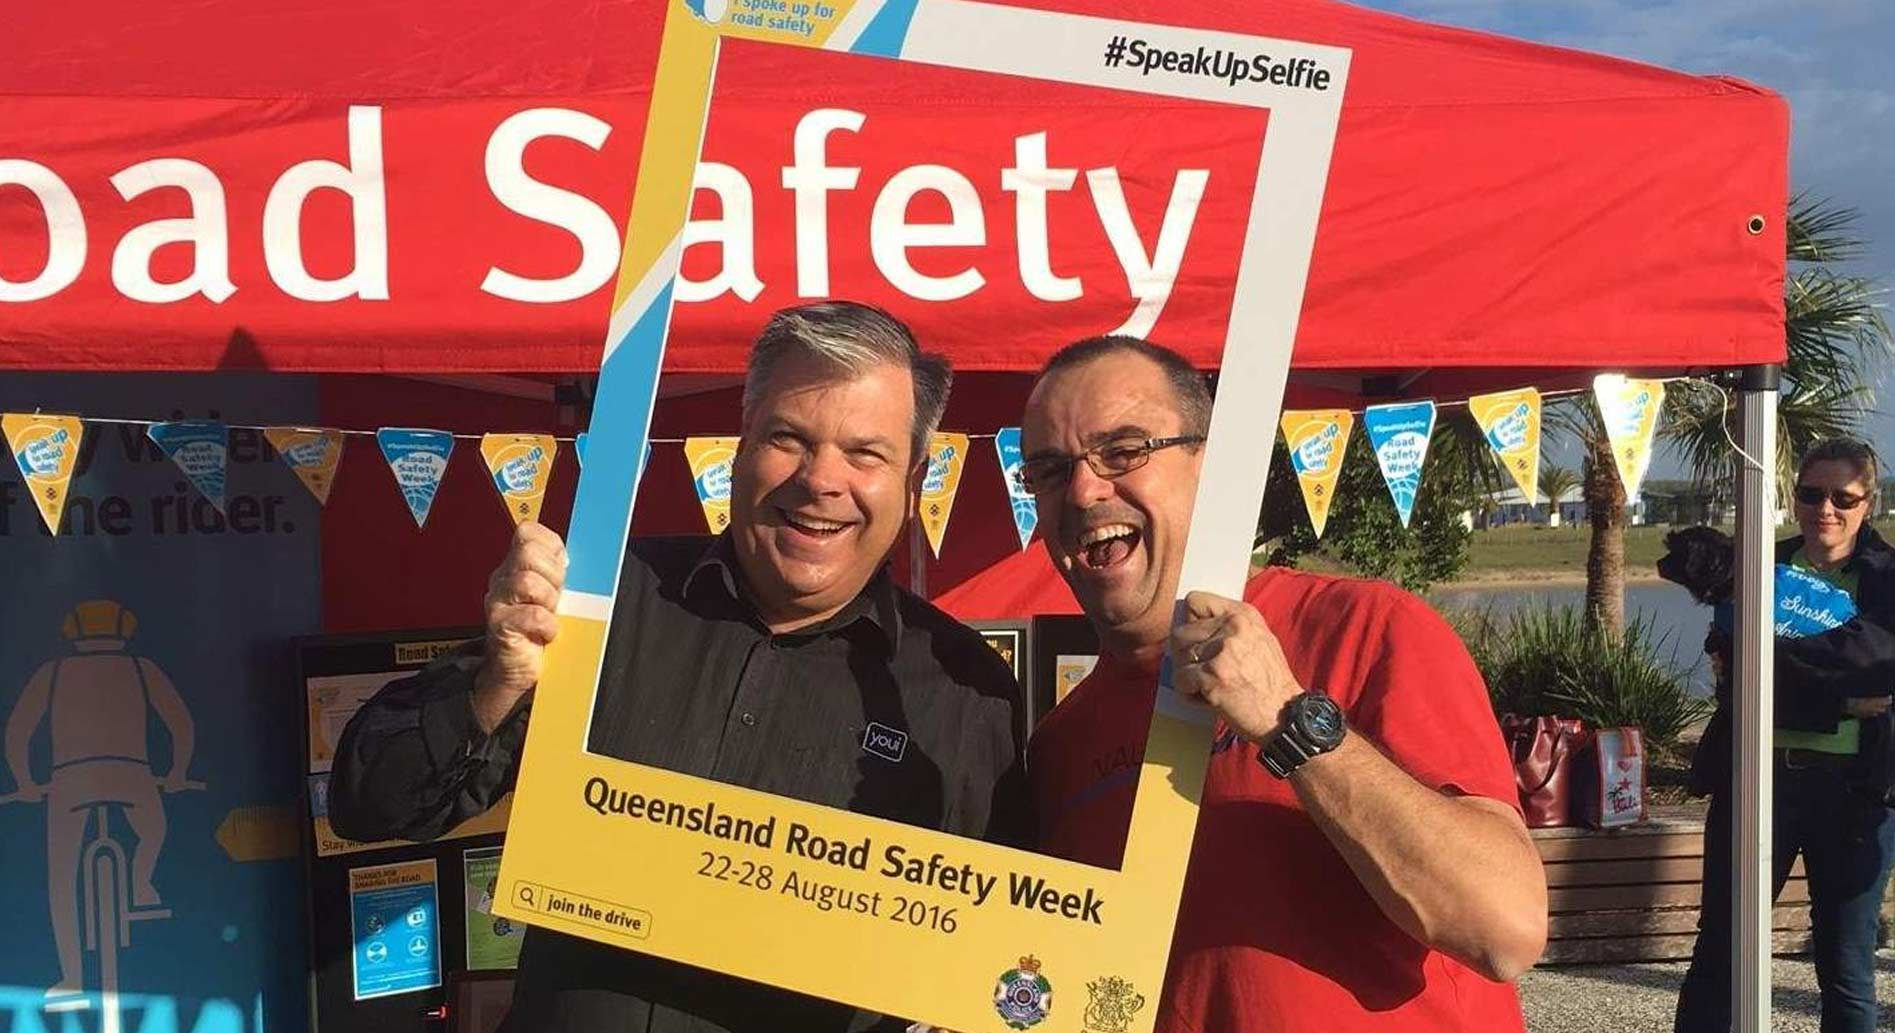 How to Throw an Awesome Road Safety Week Party